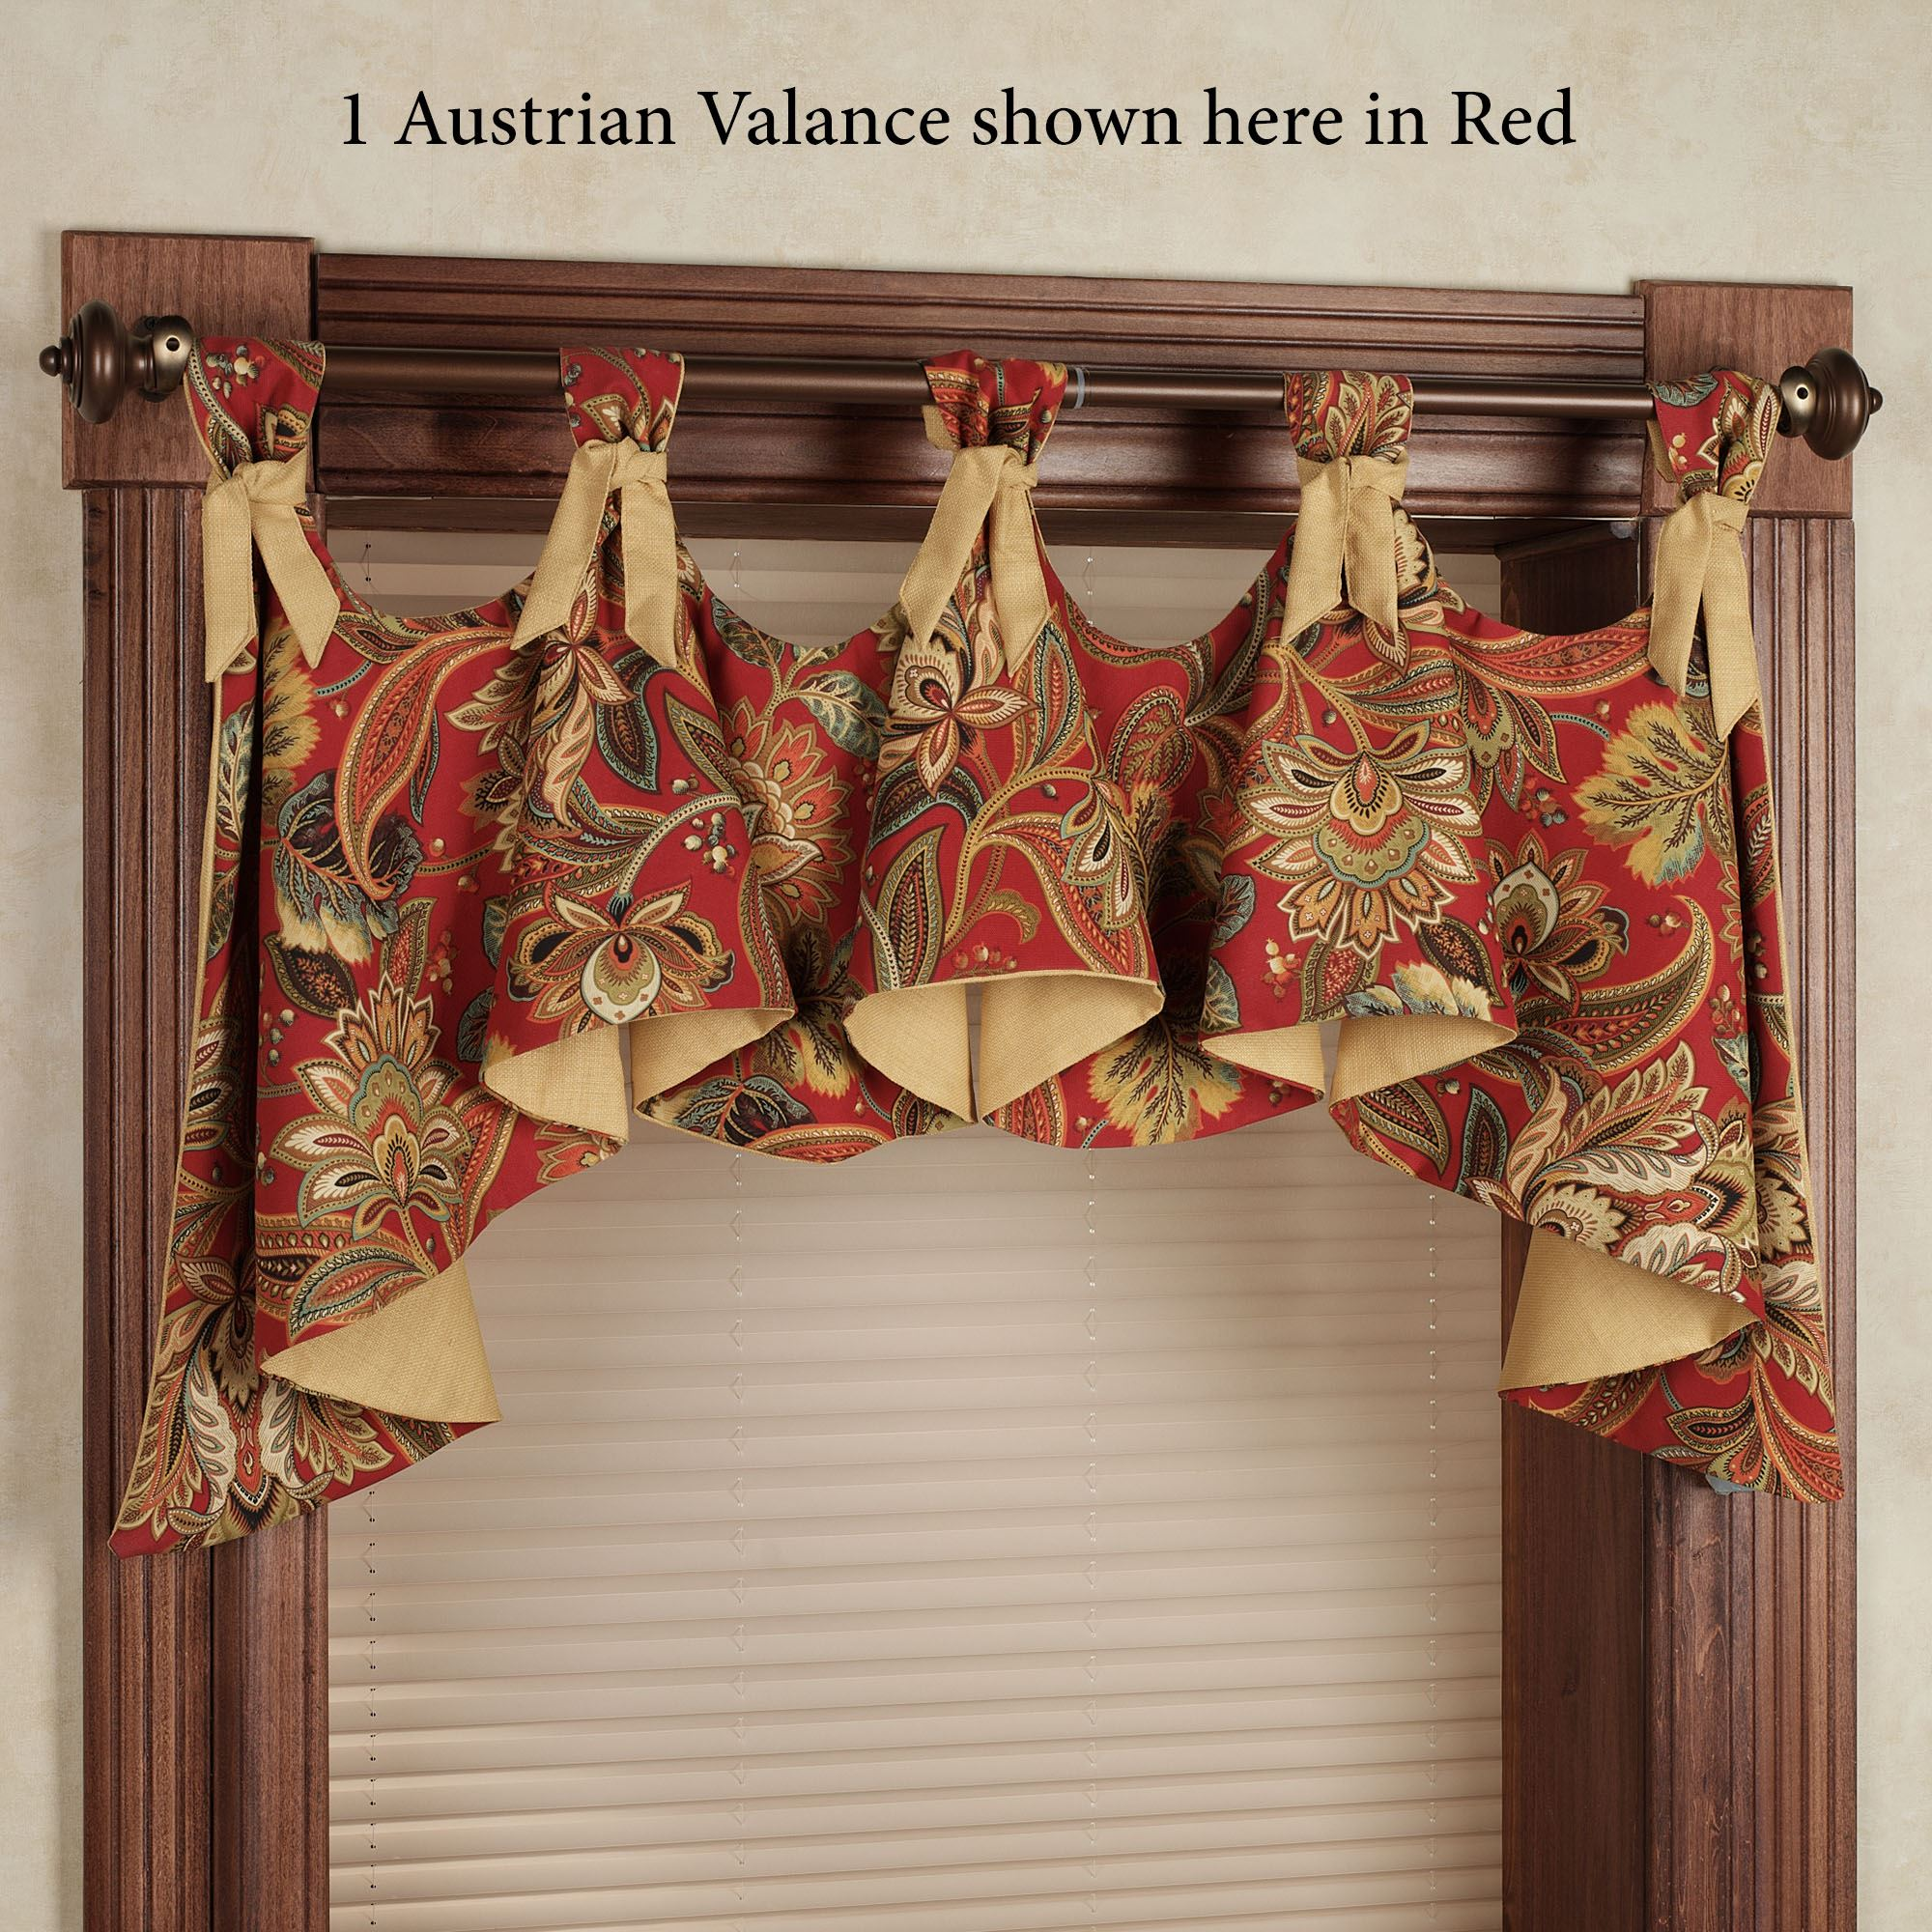 window empire dramatic bathroom satin interesting tivoli kitchen lined fabulo roman size colored tailored inch full curtain bed curtains of satiating rust noticeabl ready pair cool horrifying and stunning made gold pleasant glorious skirts valance green valances